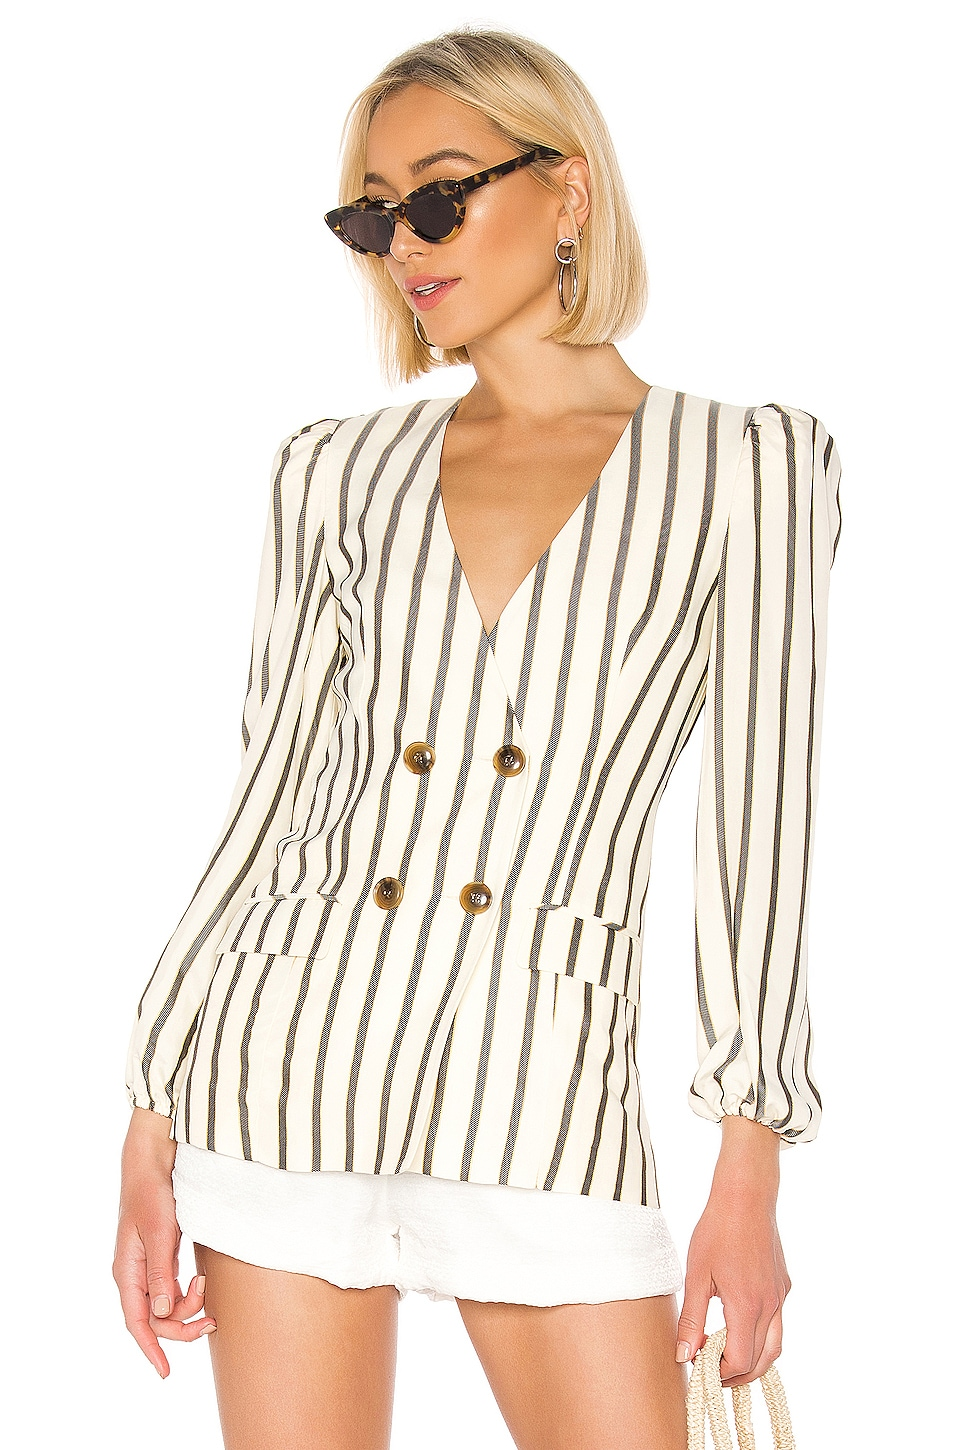 House of Harlow 1960 X REVOLVE Milan Jacket in Ivory & Black Stripe